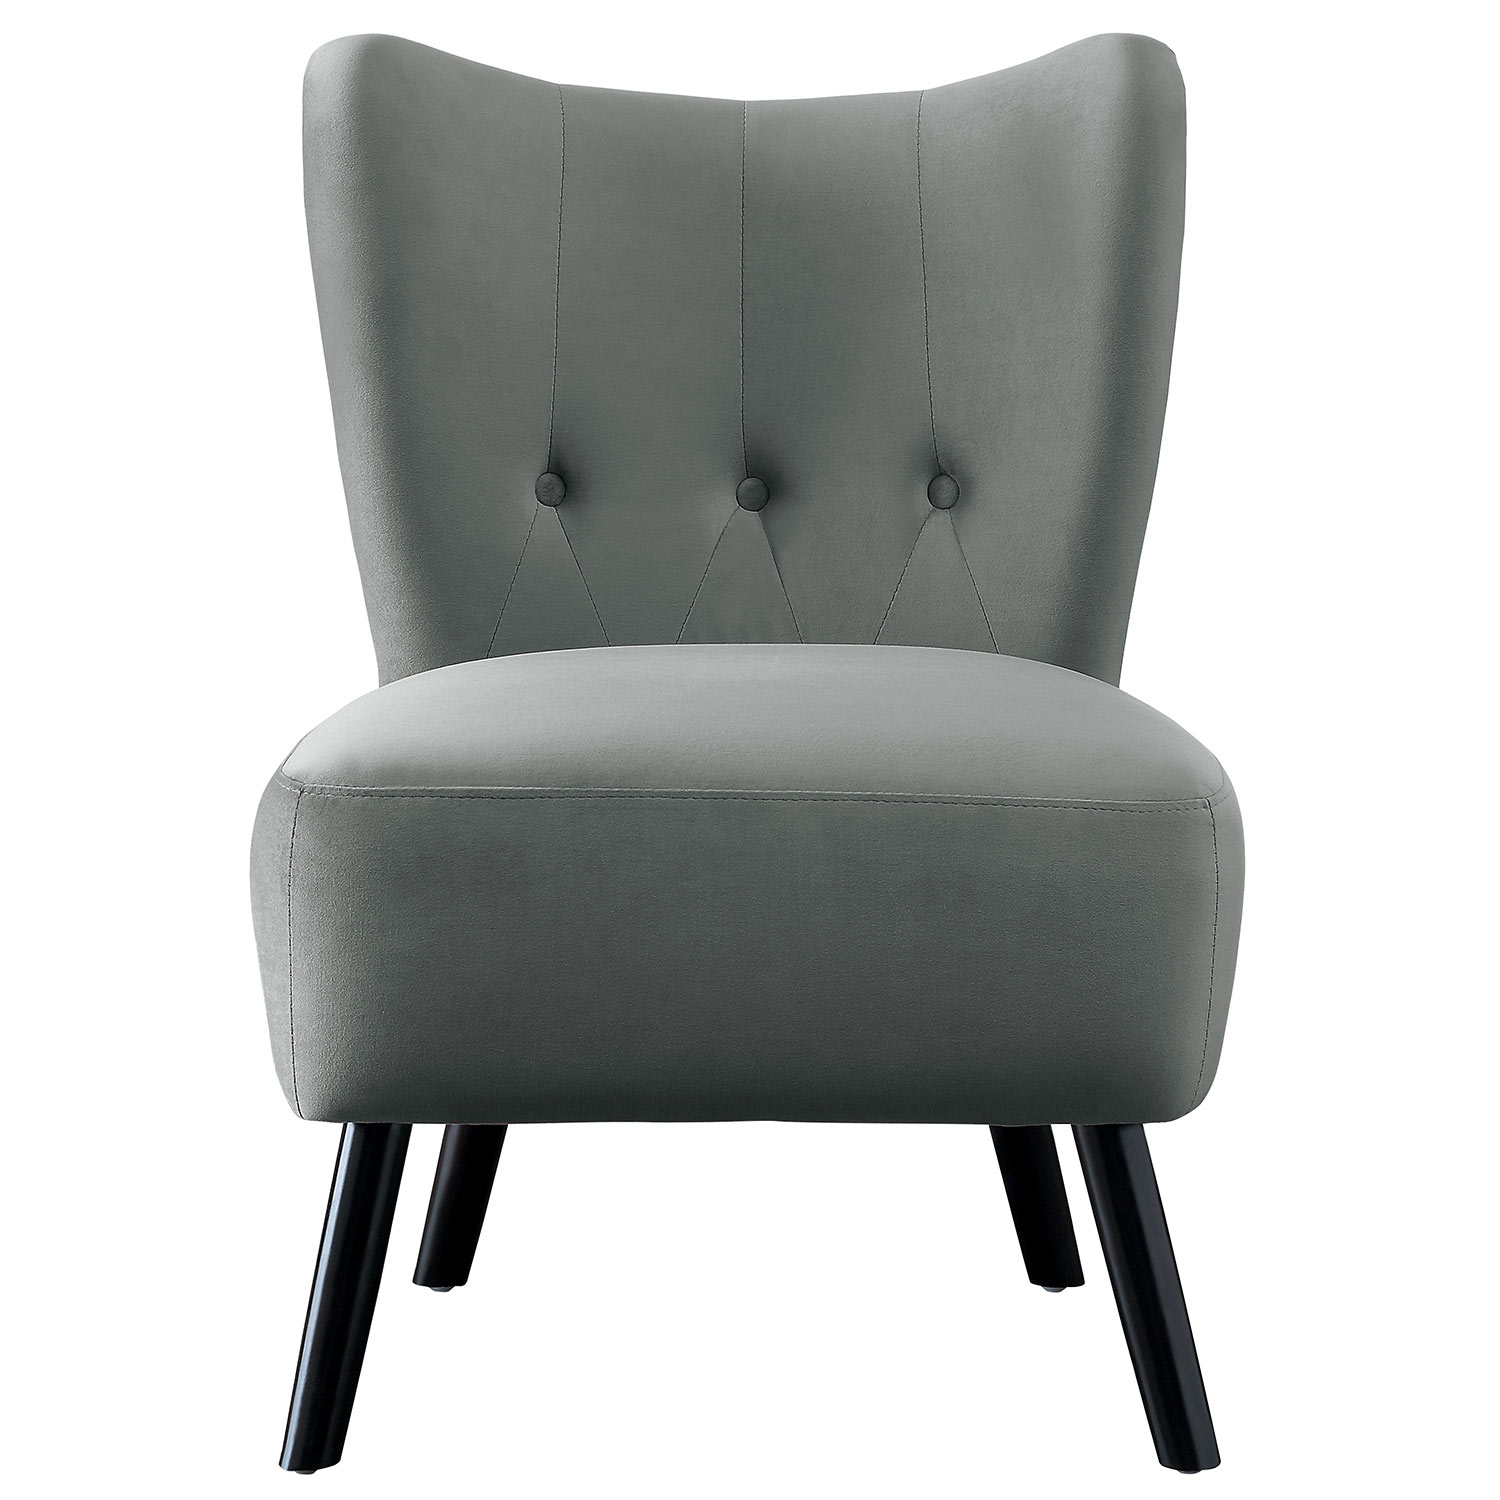 Homelegance Imani Accent Chair - Gray